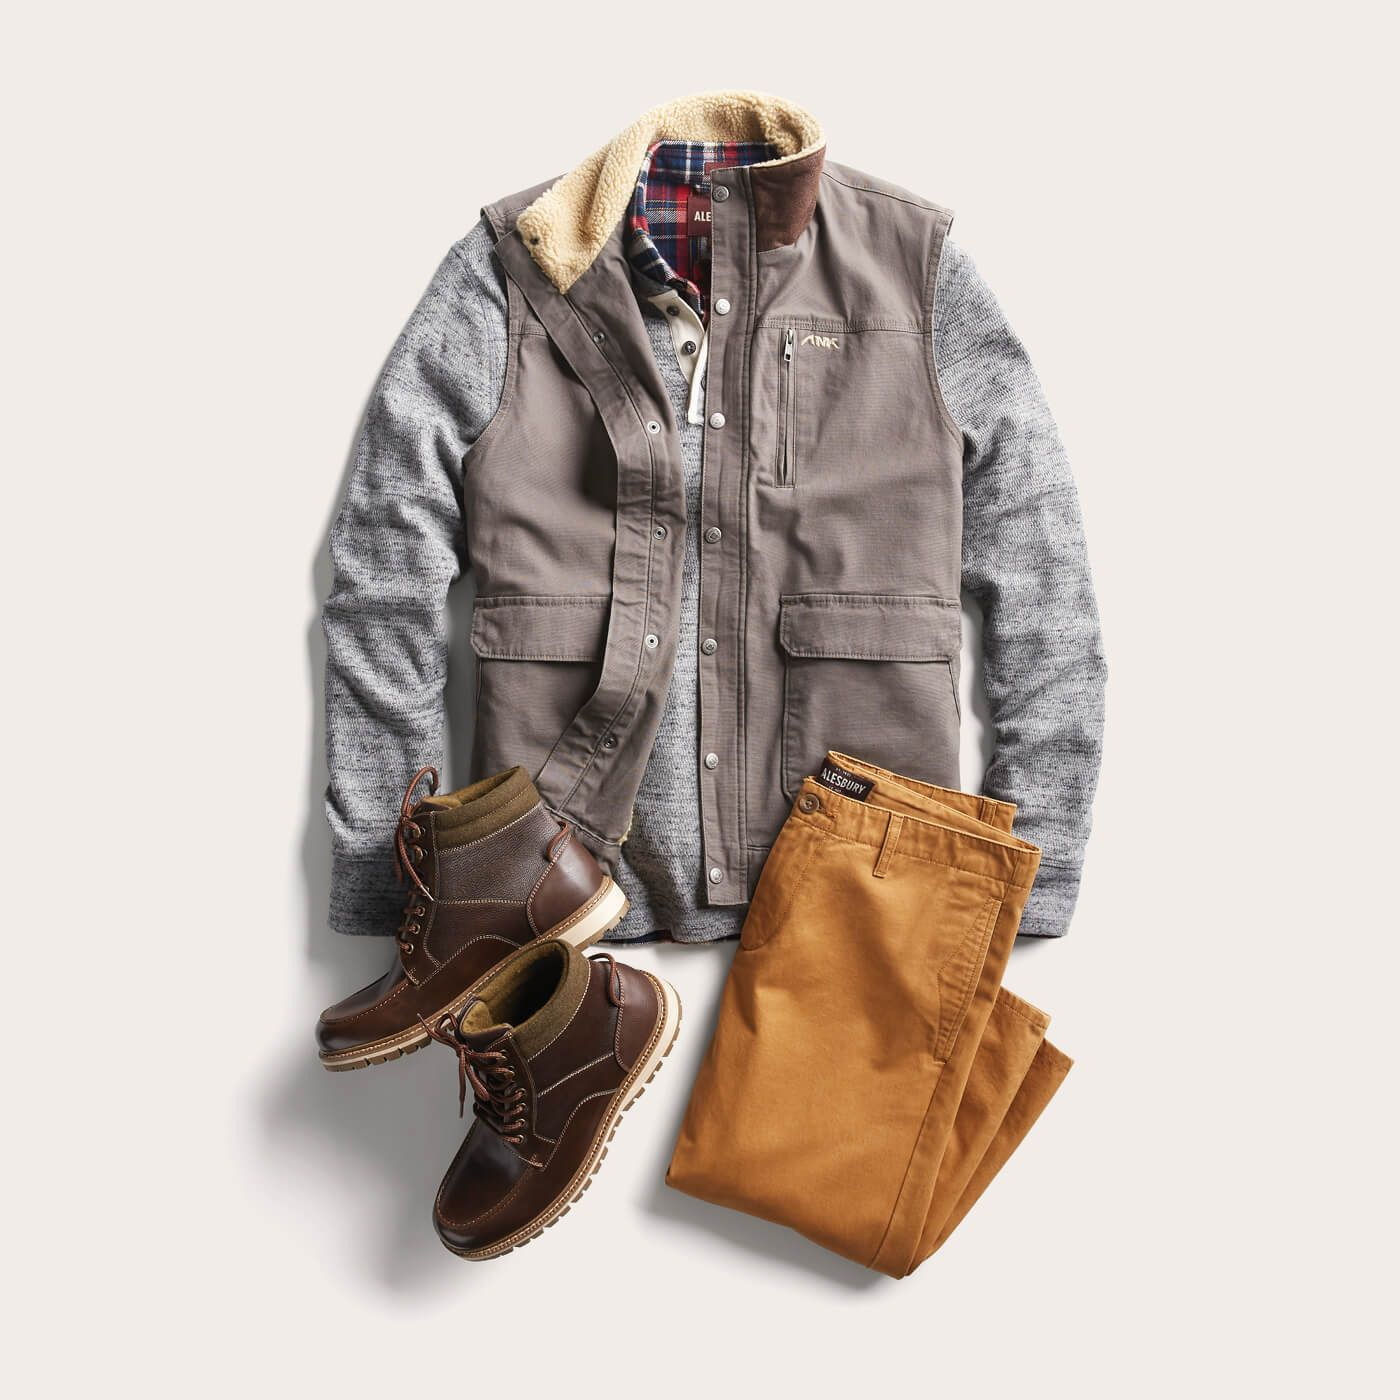 Pin by Seth Kuhlmann on Menswear | Mens outfits, Stylish